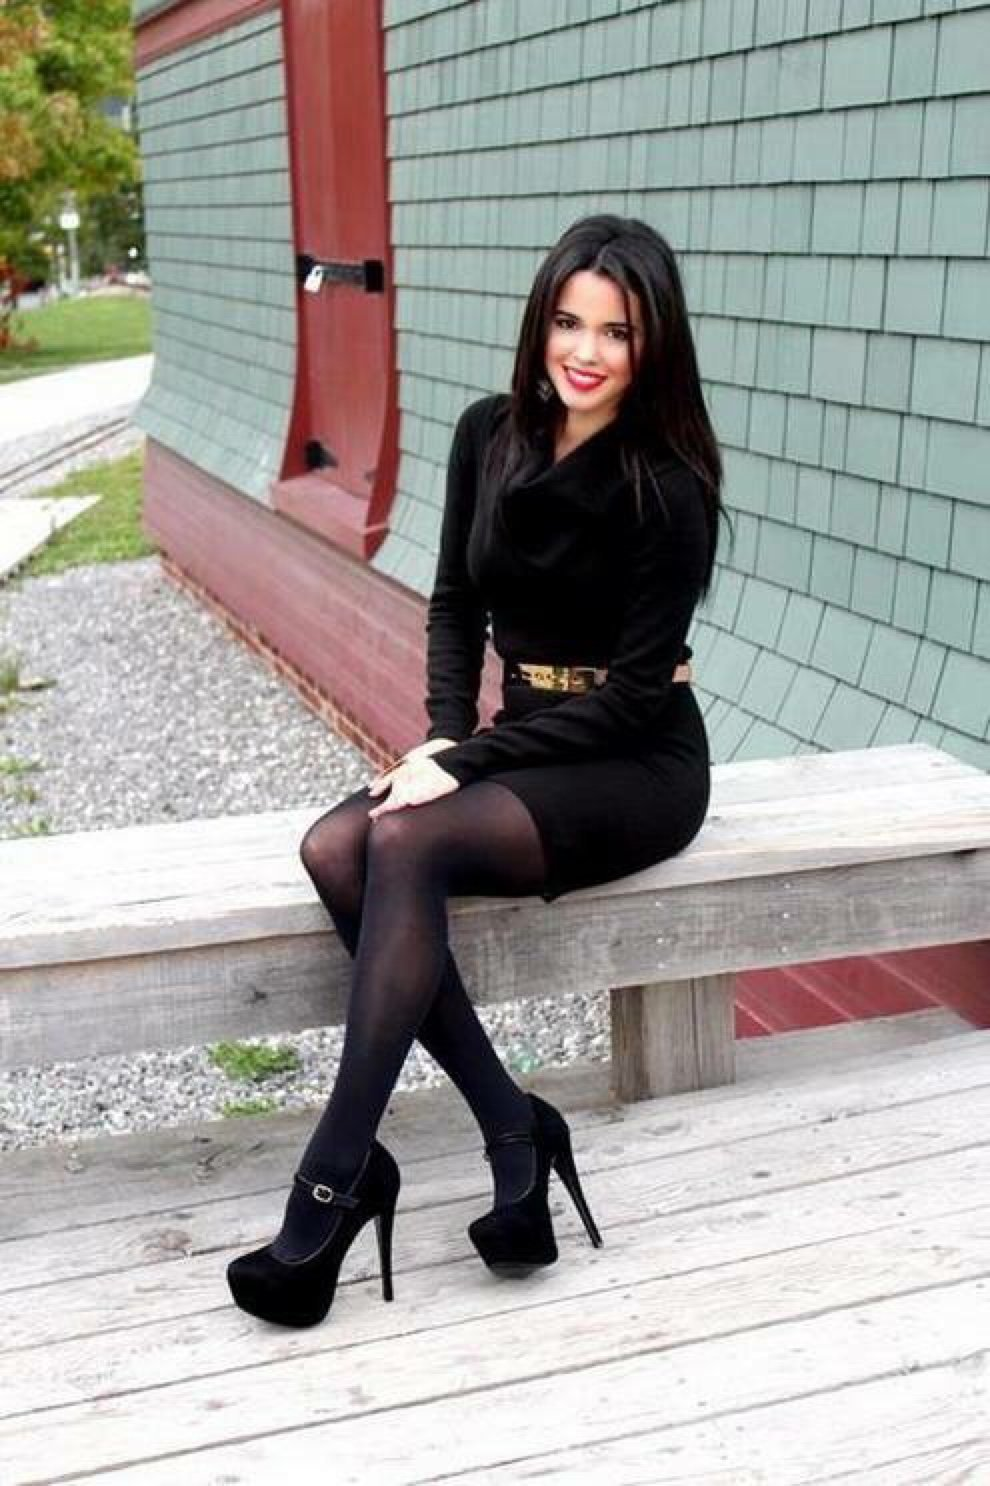 Sweater-dress-and-hose..-1 140+ Lovely Women's Outfit Ideas for Winter in 2021